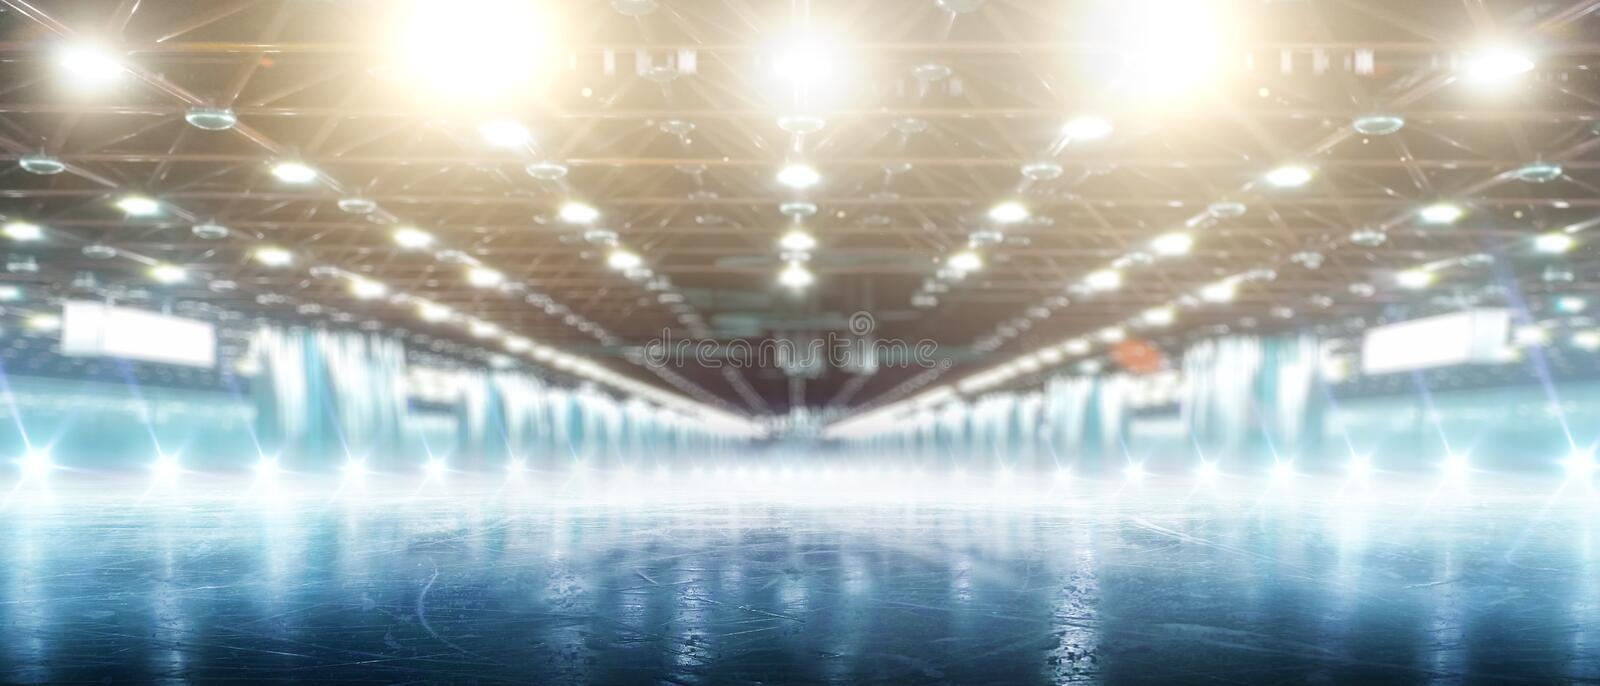 Sport. Winter rink in the spotlights. Empty winter background and empty ice rink with ice and lights stock images